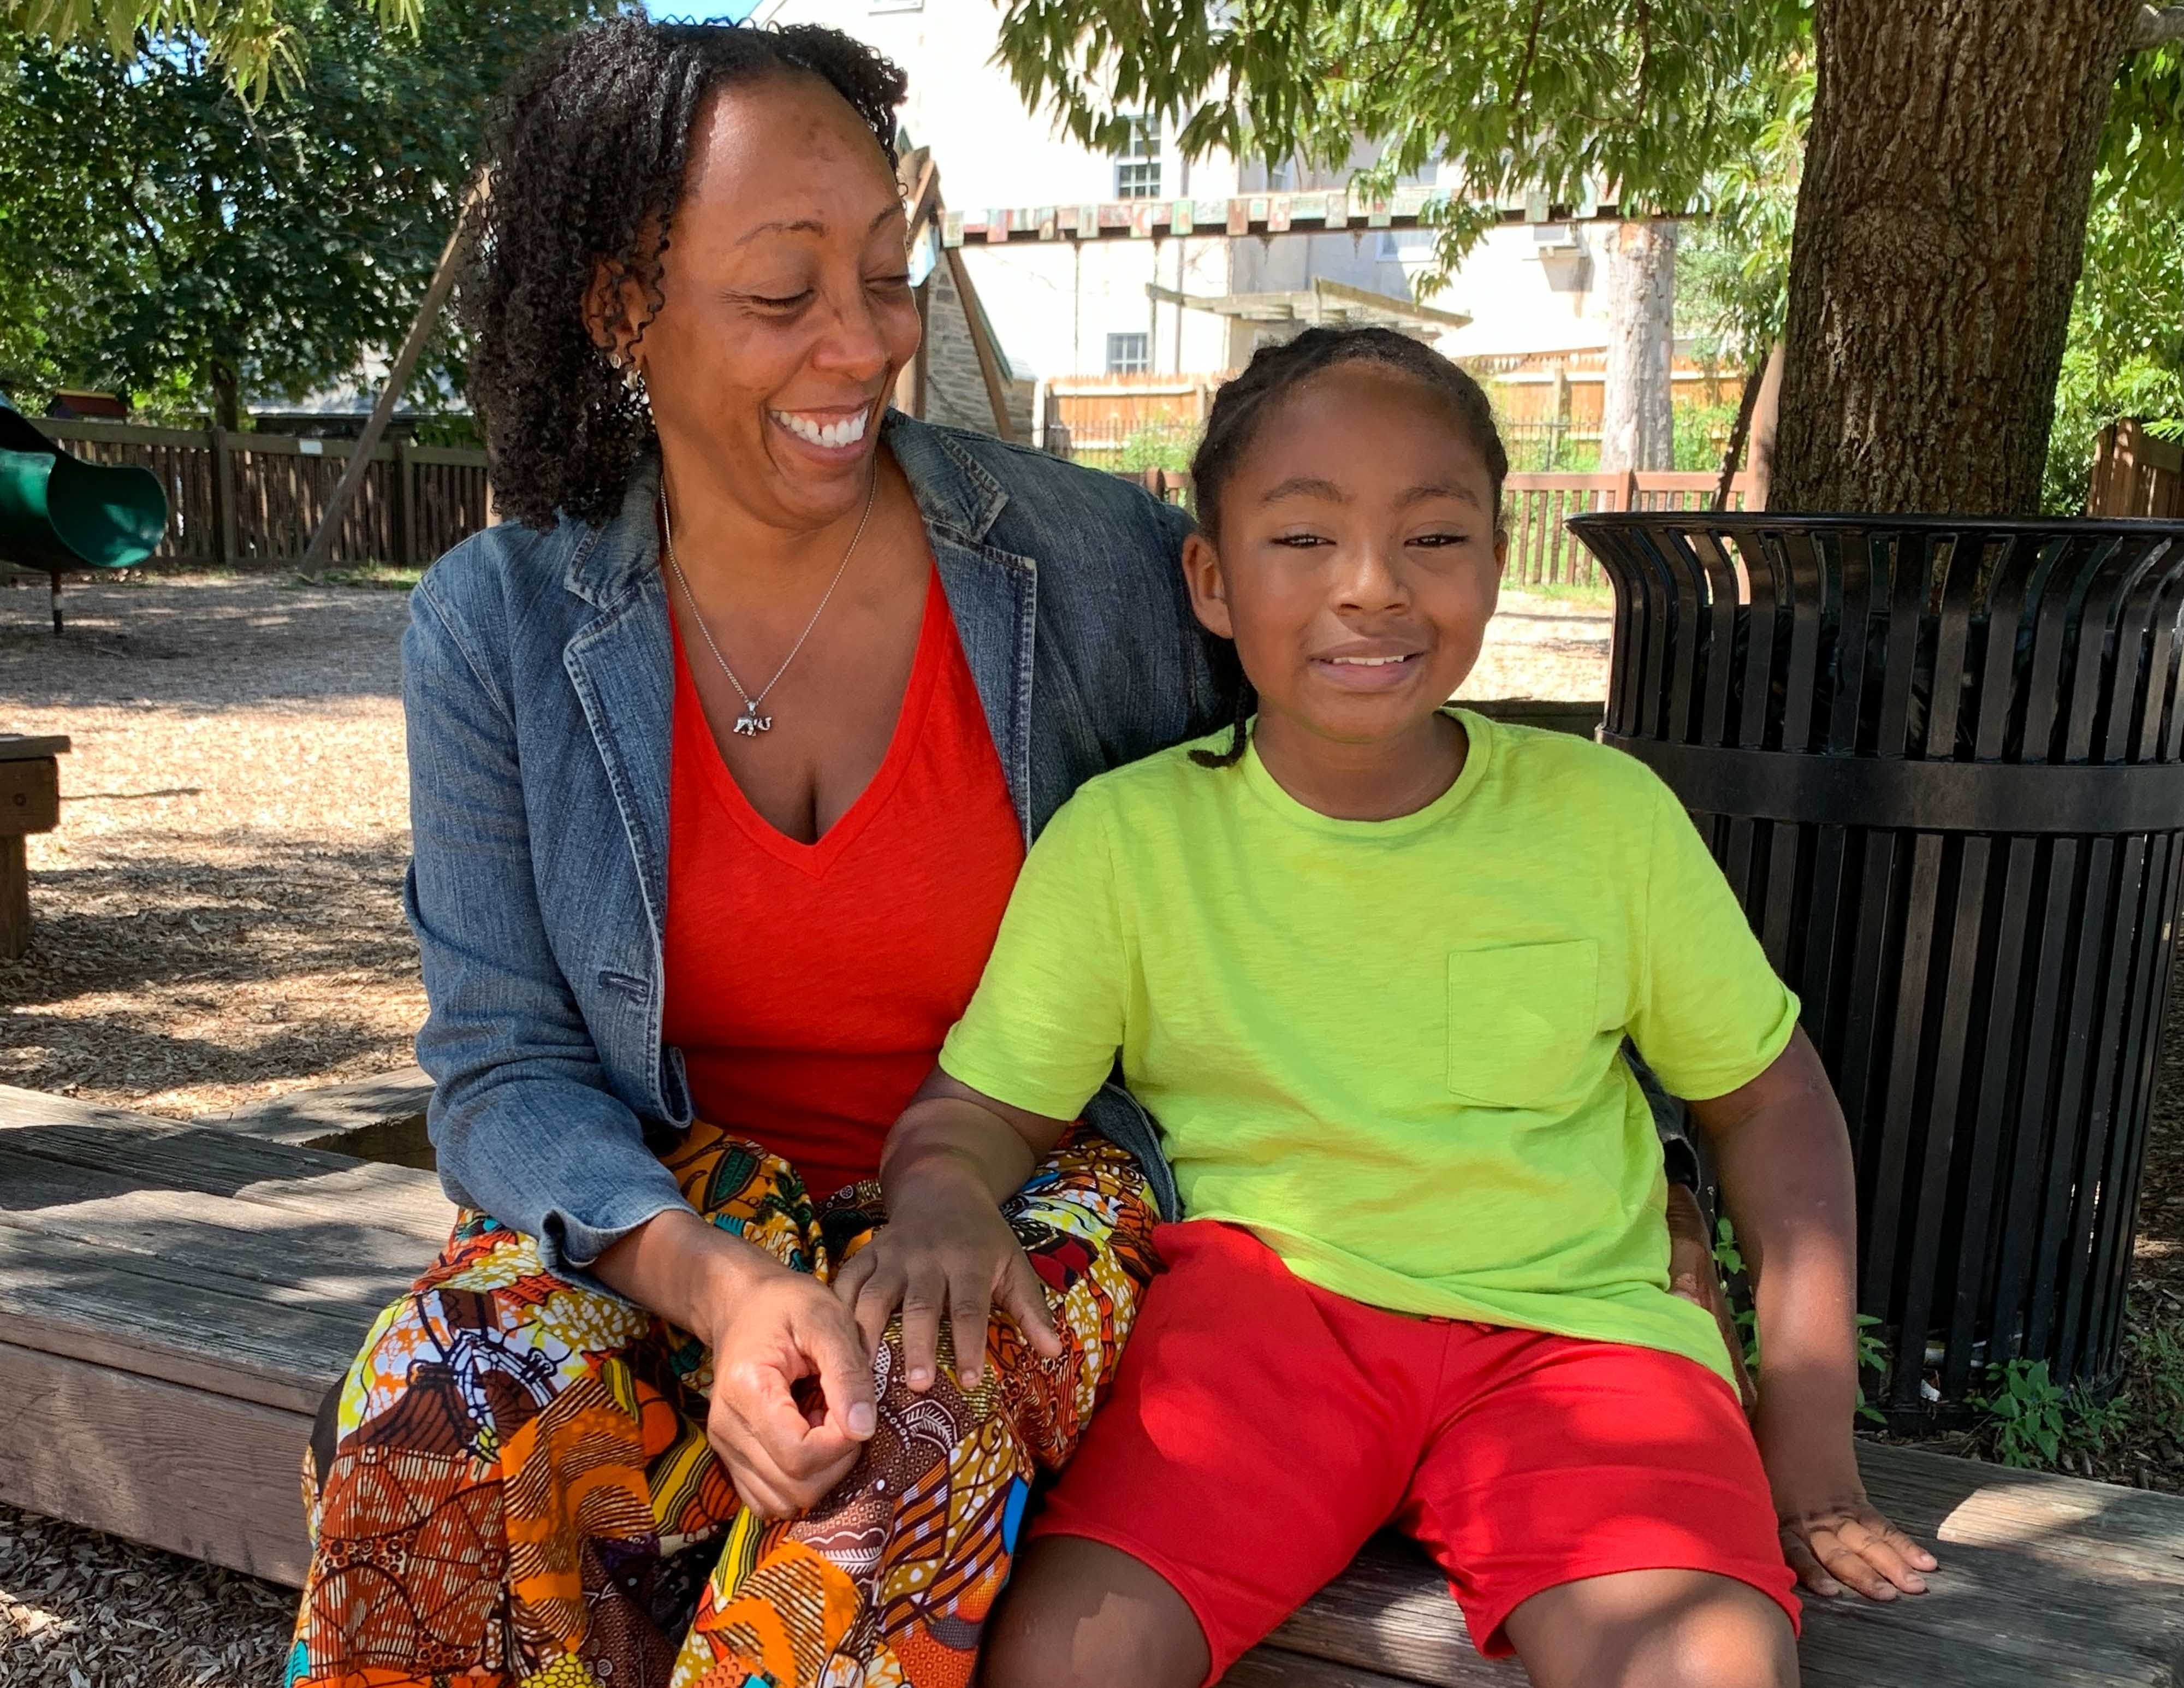 Jeannine Payne sits on a bench with her son Andre. She wears a red top and a denim jacket. He's wearing a neon green shirt and red shorts.